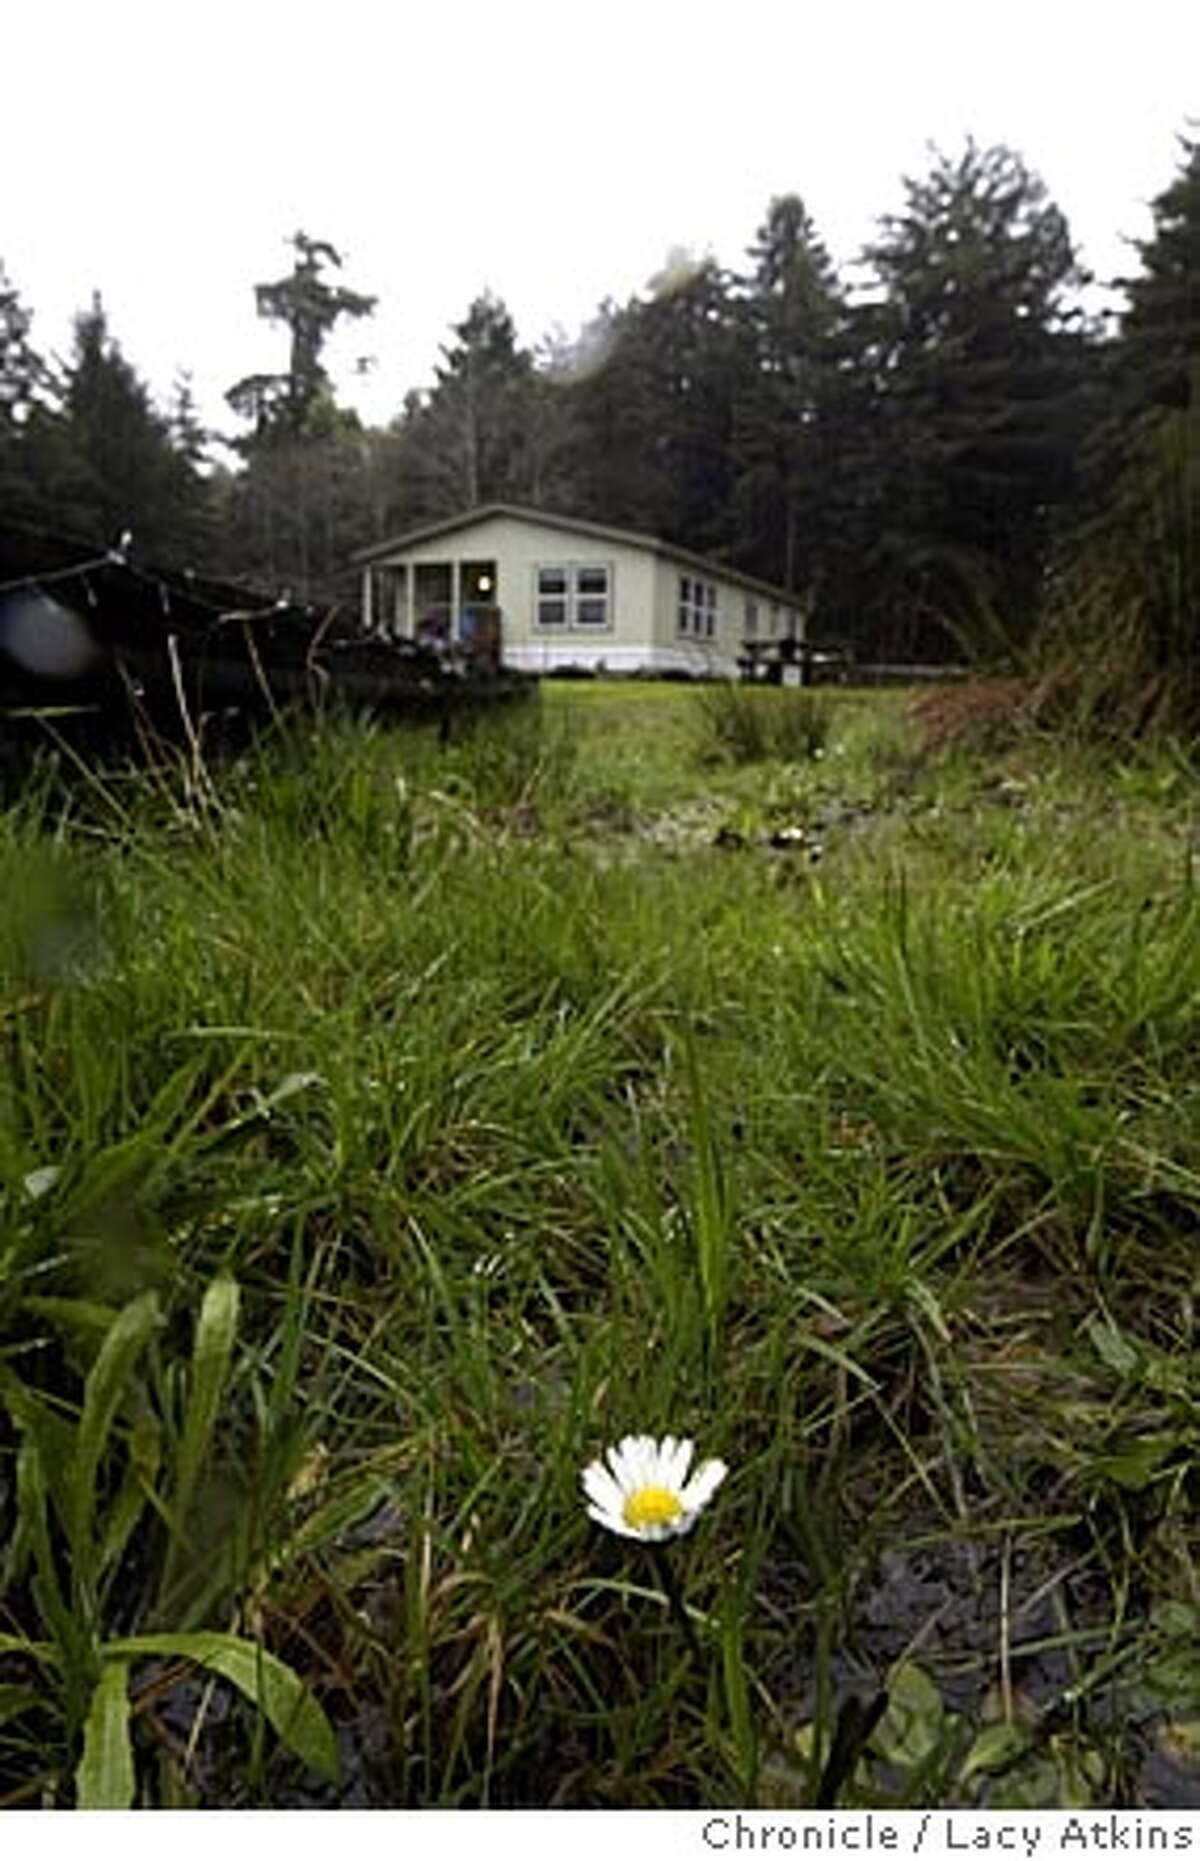 A single daisy blooms in the wetlands of Tom Abate property a his second home, Feb.27, 2005, in Eureka. A first person from Tom Abate guiding wannabe second home builders told through the eyes of yours truly, who last summer financed and engineered the construction of a three-bedroom, two bath manufactured home on 5 acres of Redwoods outside the college town of Eureka, Sudnay Feb.27,2005. Photographer Lacy Atkins